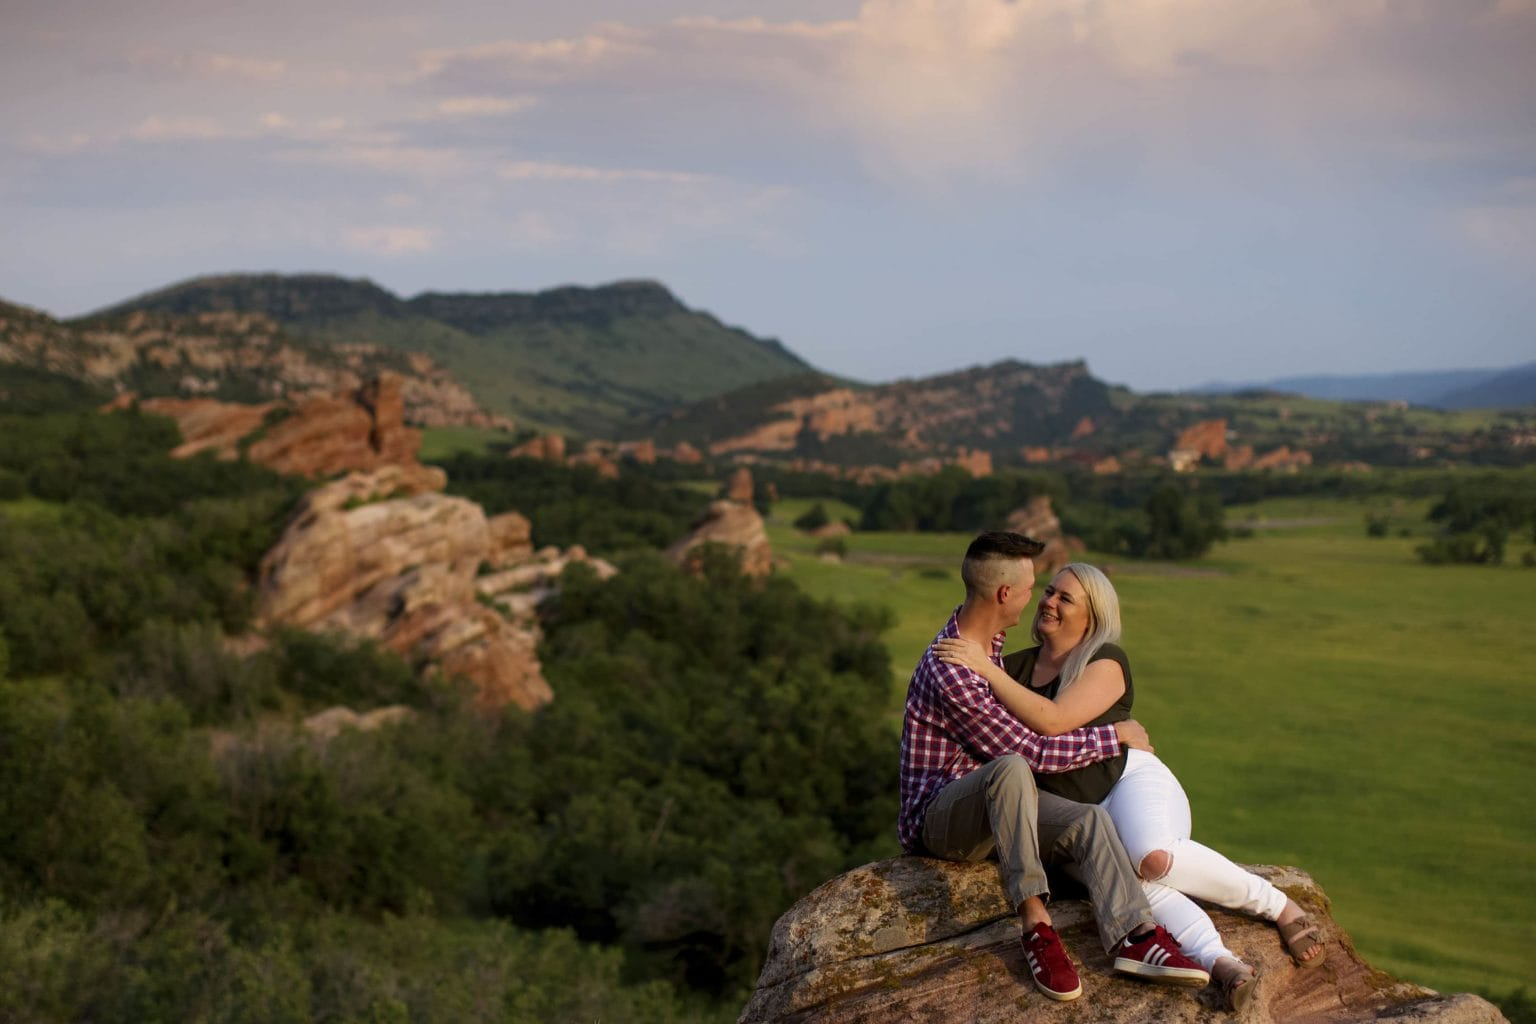 Colin and Kelsey sit on a natural rock formation during their engagement photos in Littleton